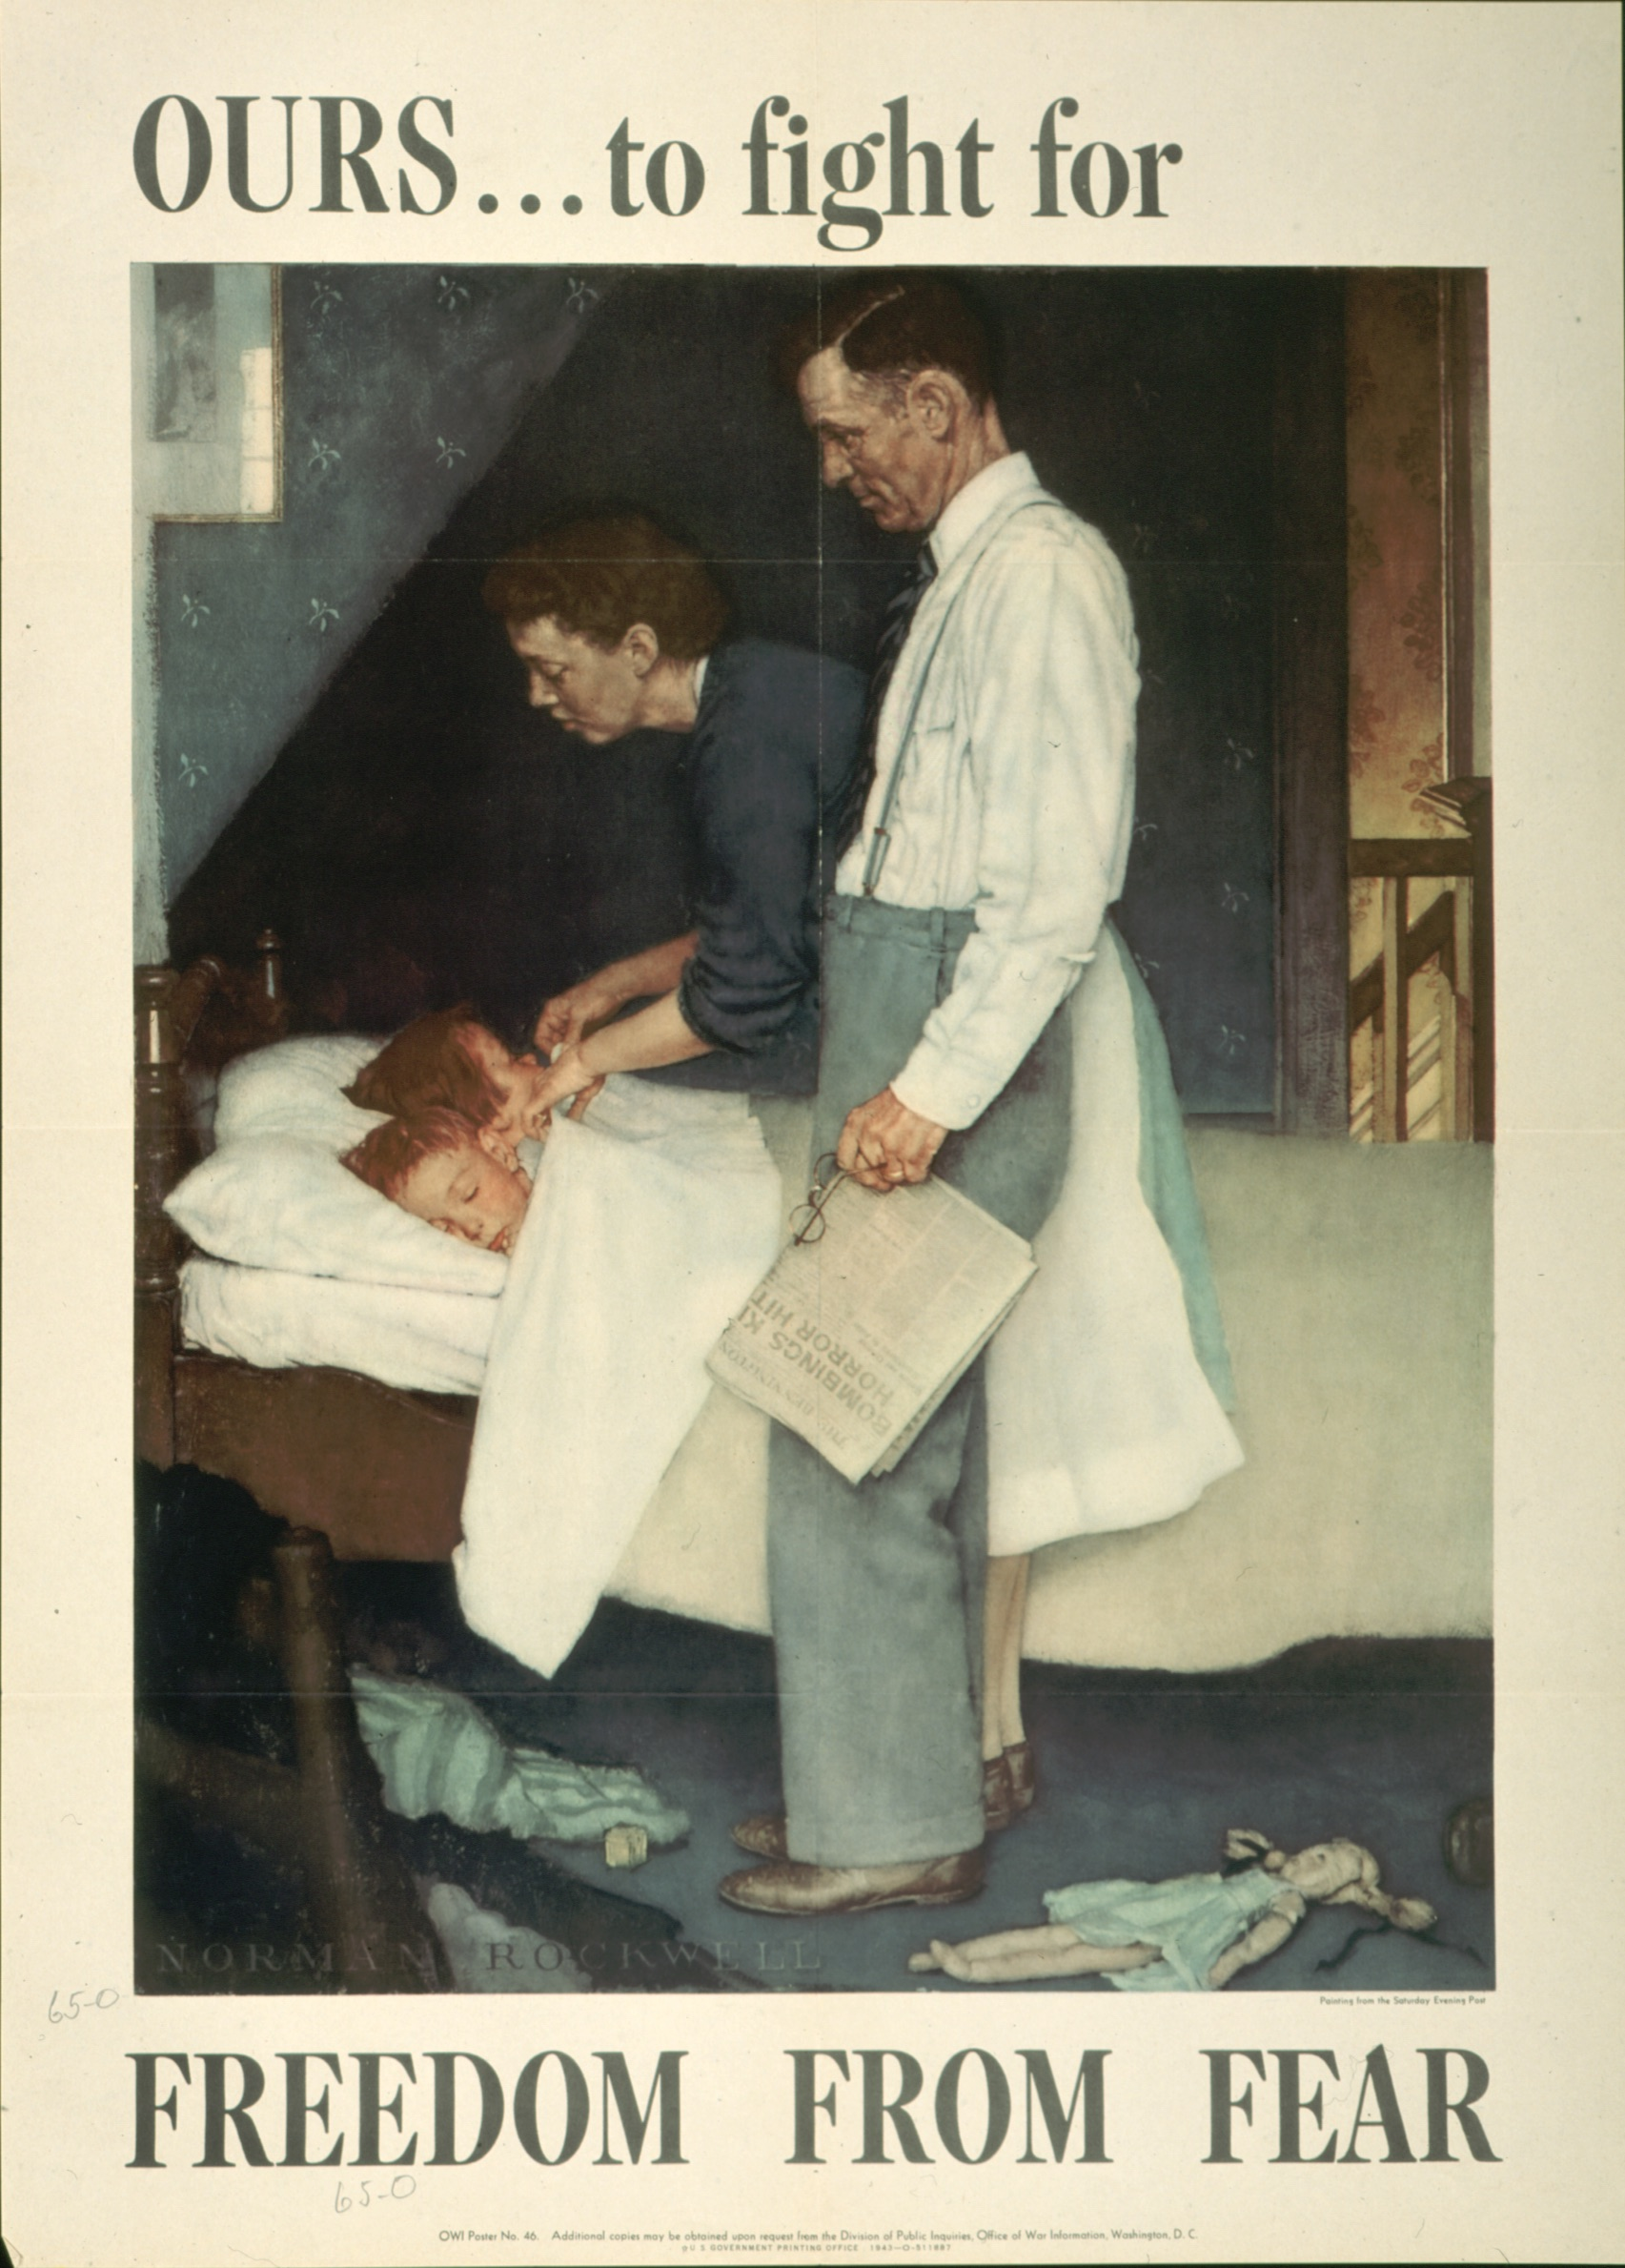 Norman Rockwell, Freedom from Fear, 1943, offset color lithograph on paper, Texas War Records Collection, 85.170.159